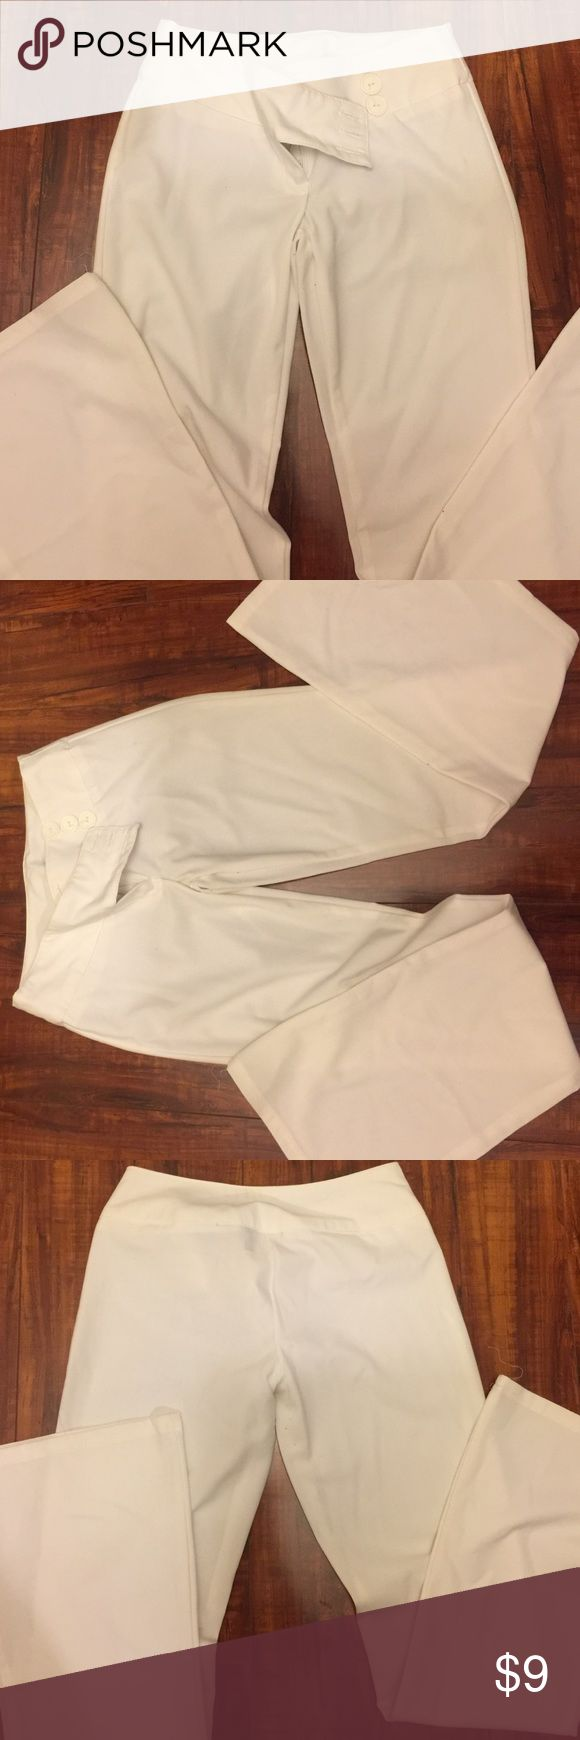 Stylish & flattering fit dress pants Super cute, they fit great! Stretchy material Rave Pants Trousers